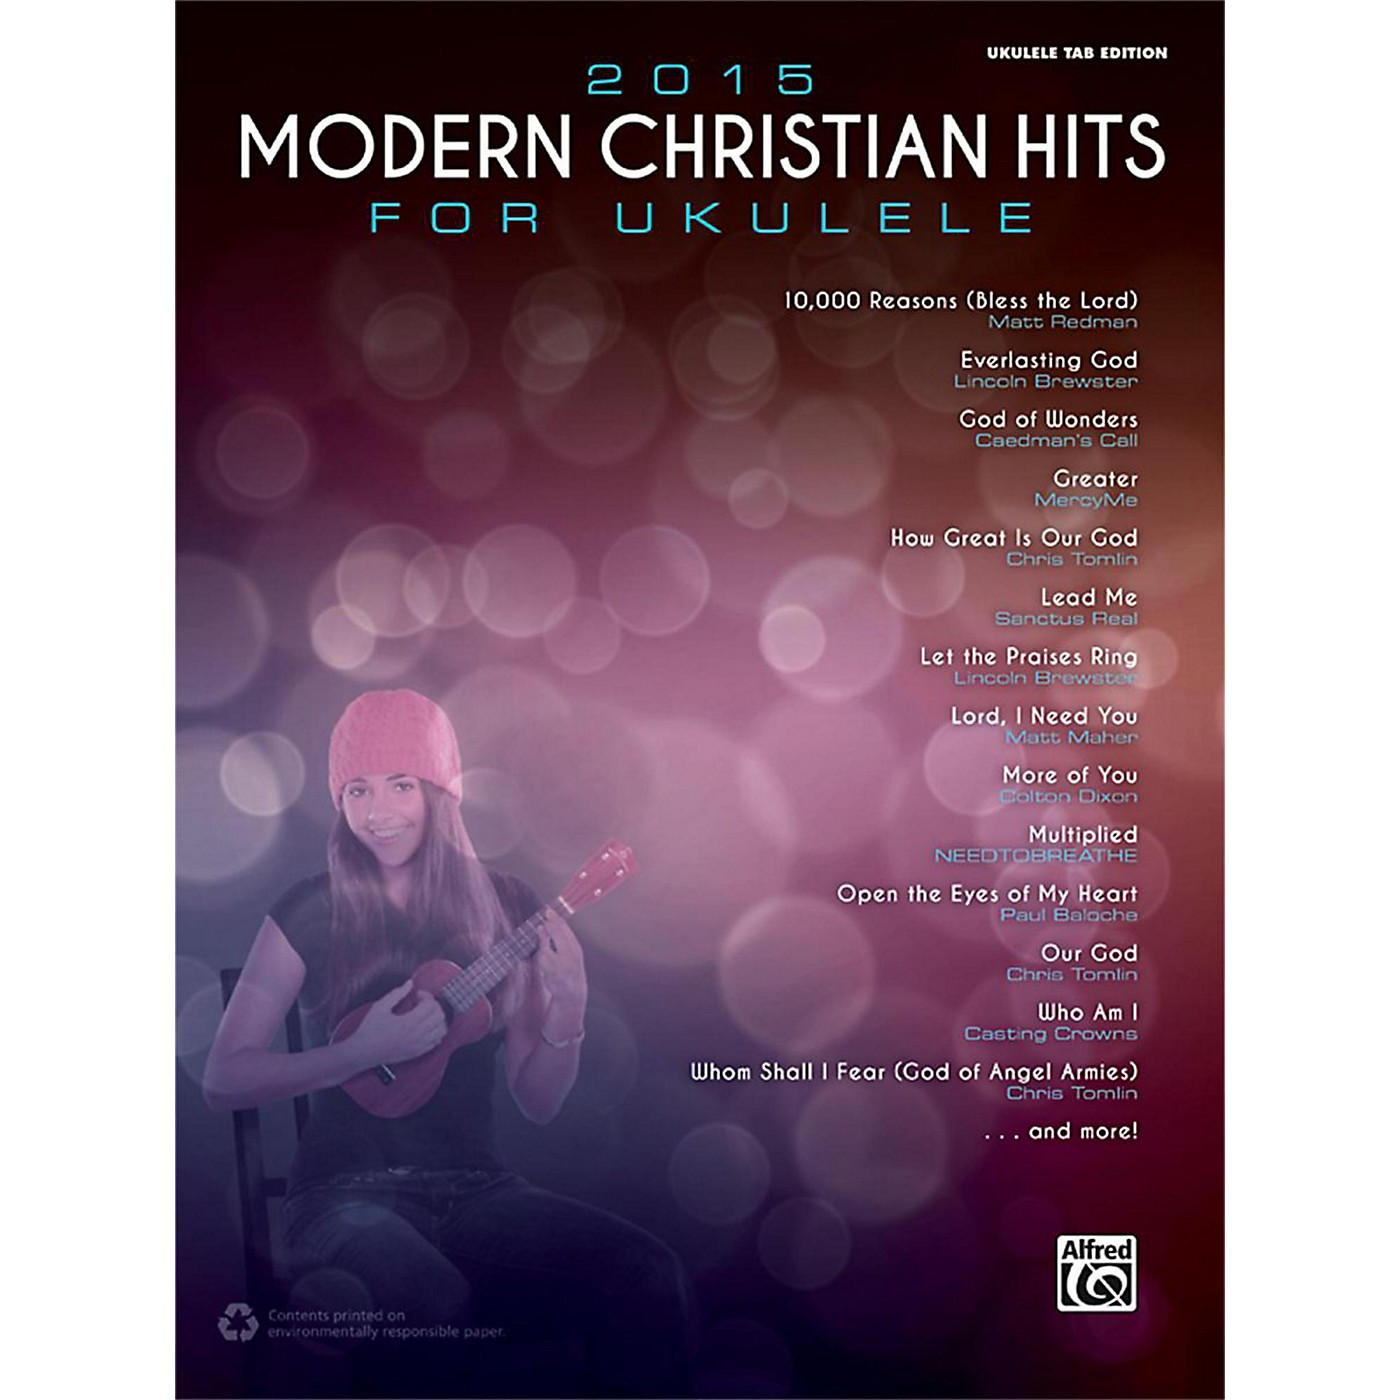 Alfred 2015 Modern Christian Hits for Ukulele Songbook Ukulele TAB Edition thumbnail